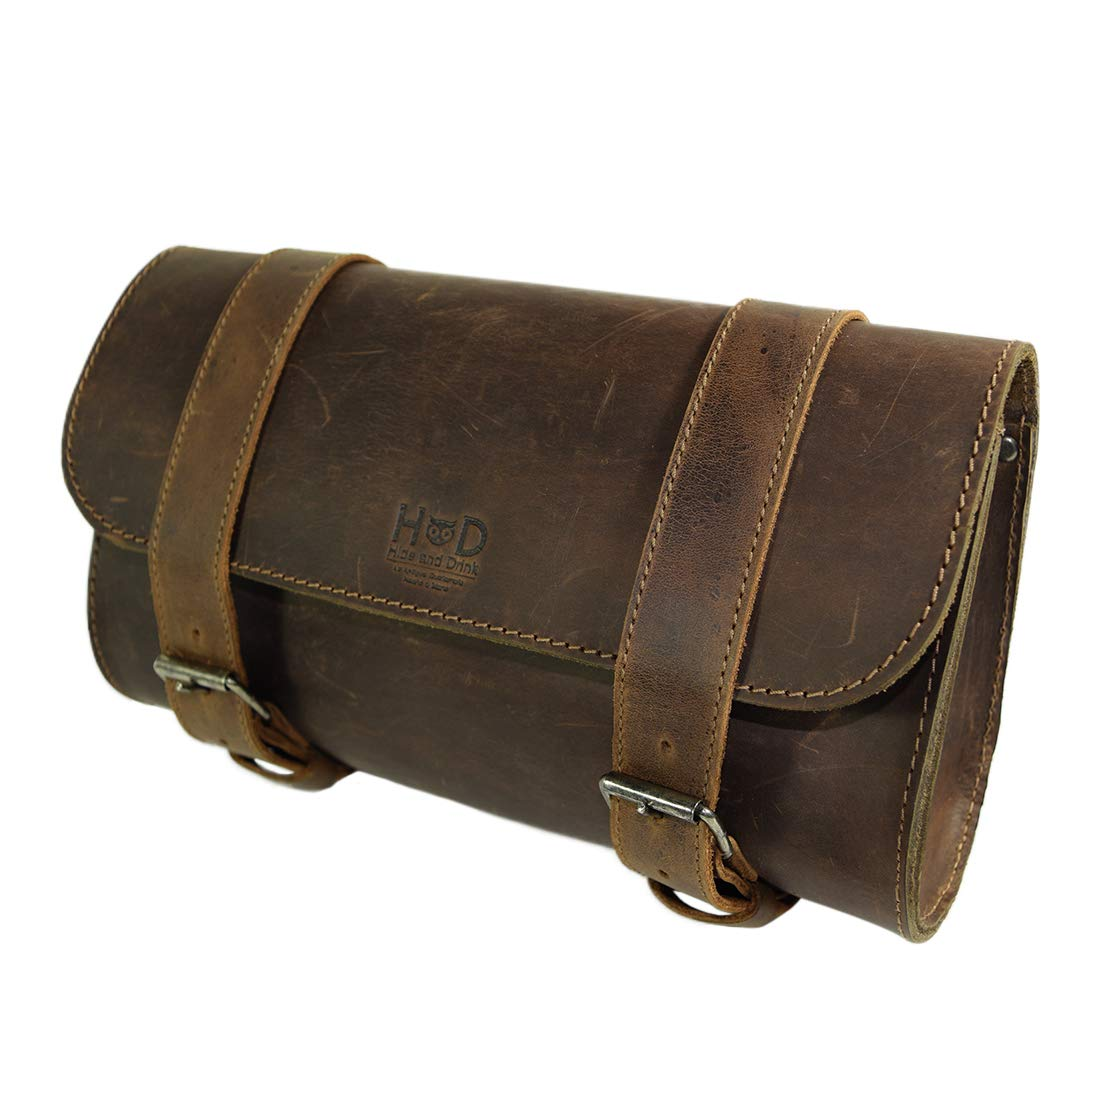 Hide & Drink, Thick Leather Motorcycle Handlebar Bag, 2 Straps, Tool Organizer, Motorbike Storage Pouch, Premium Saddle Bag for Bike Commuters, Handmade Includes 101 Year Warranty :: Bourbon Brown